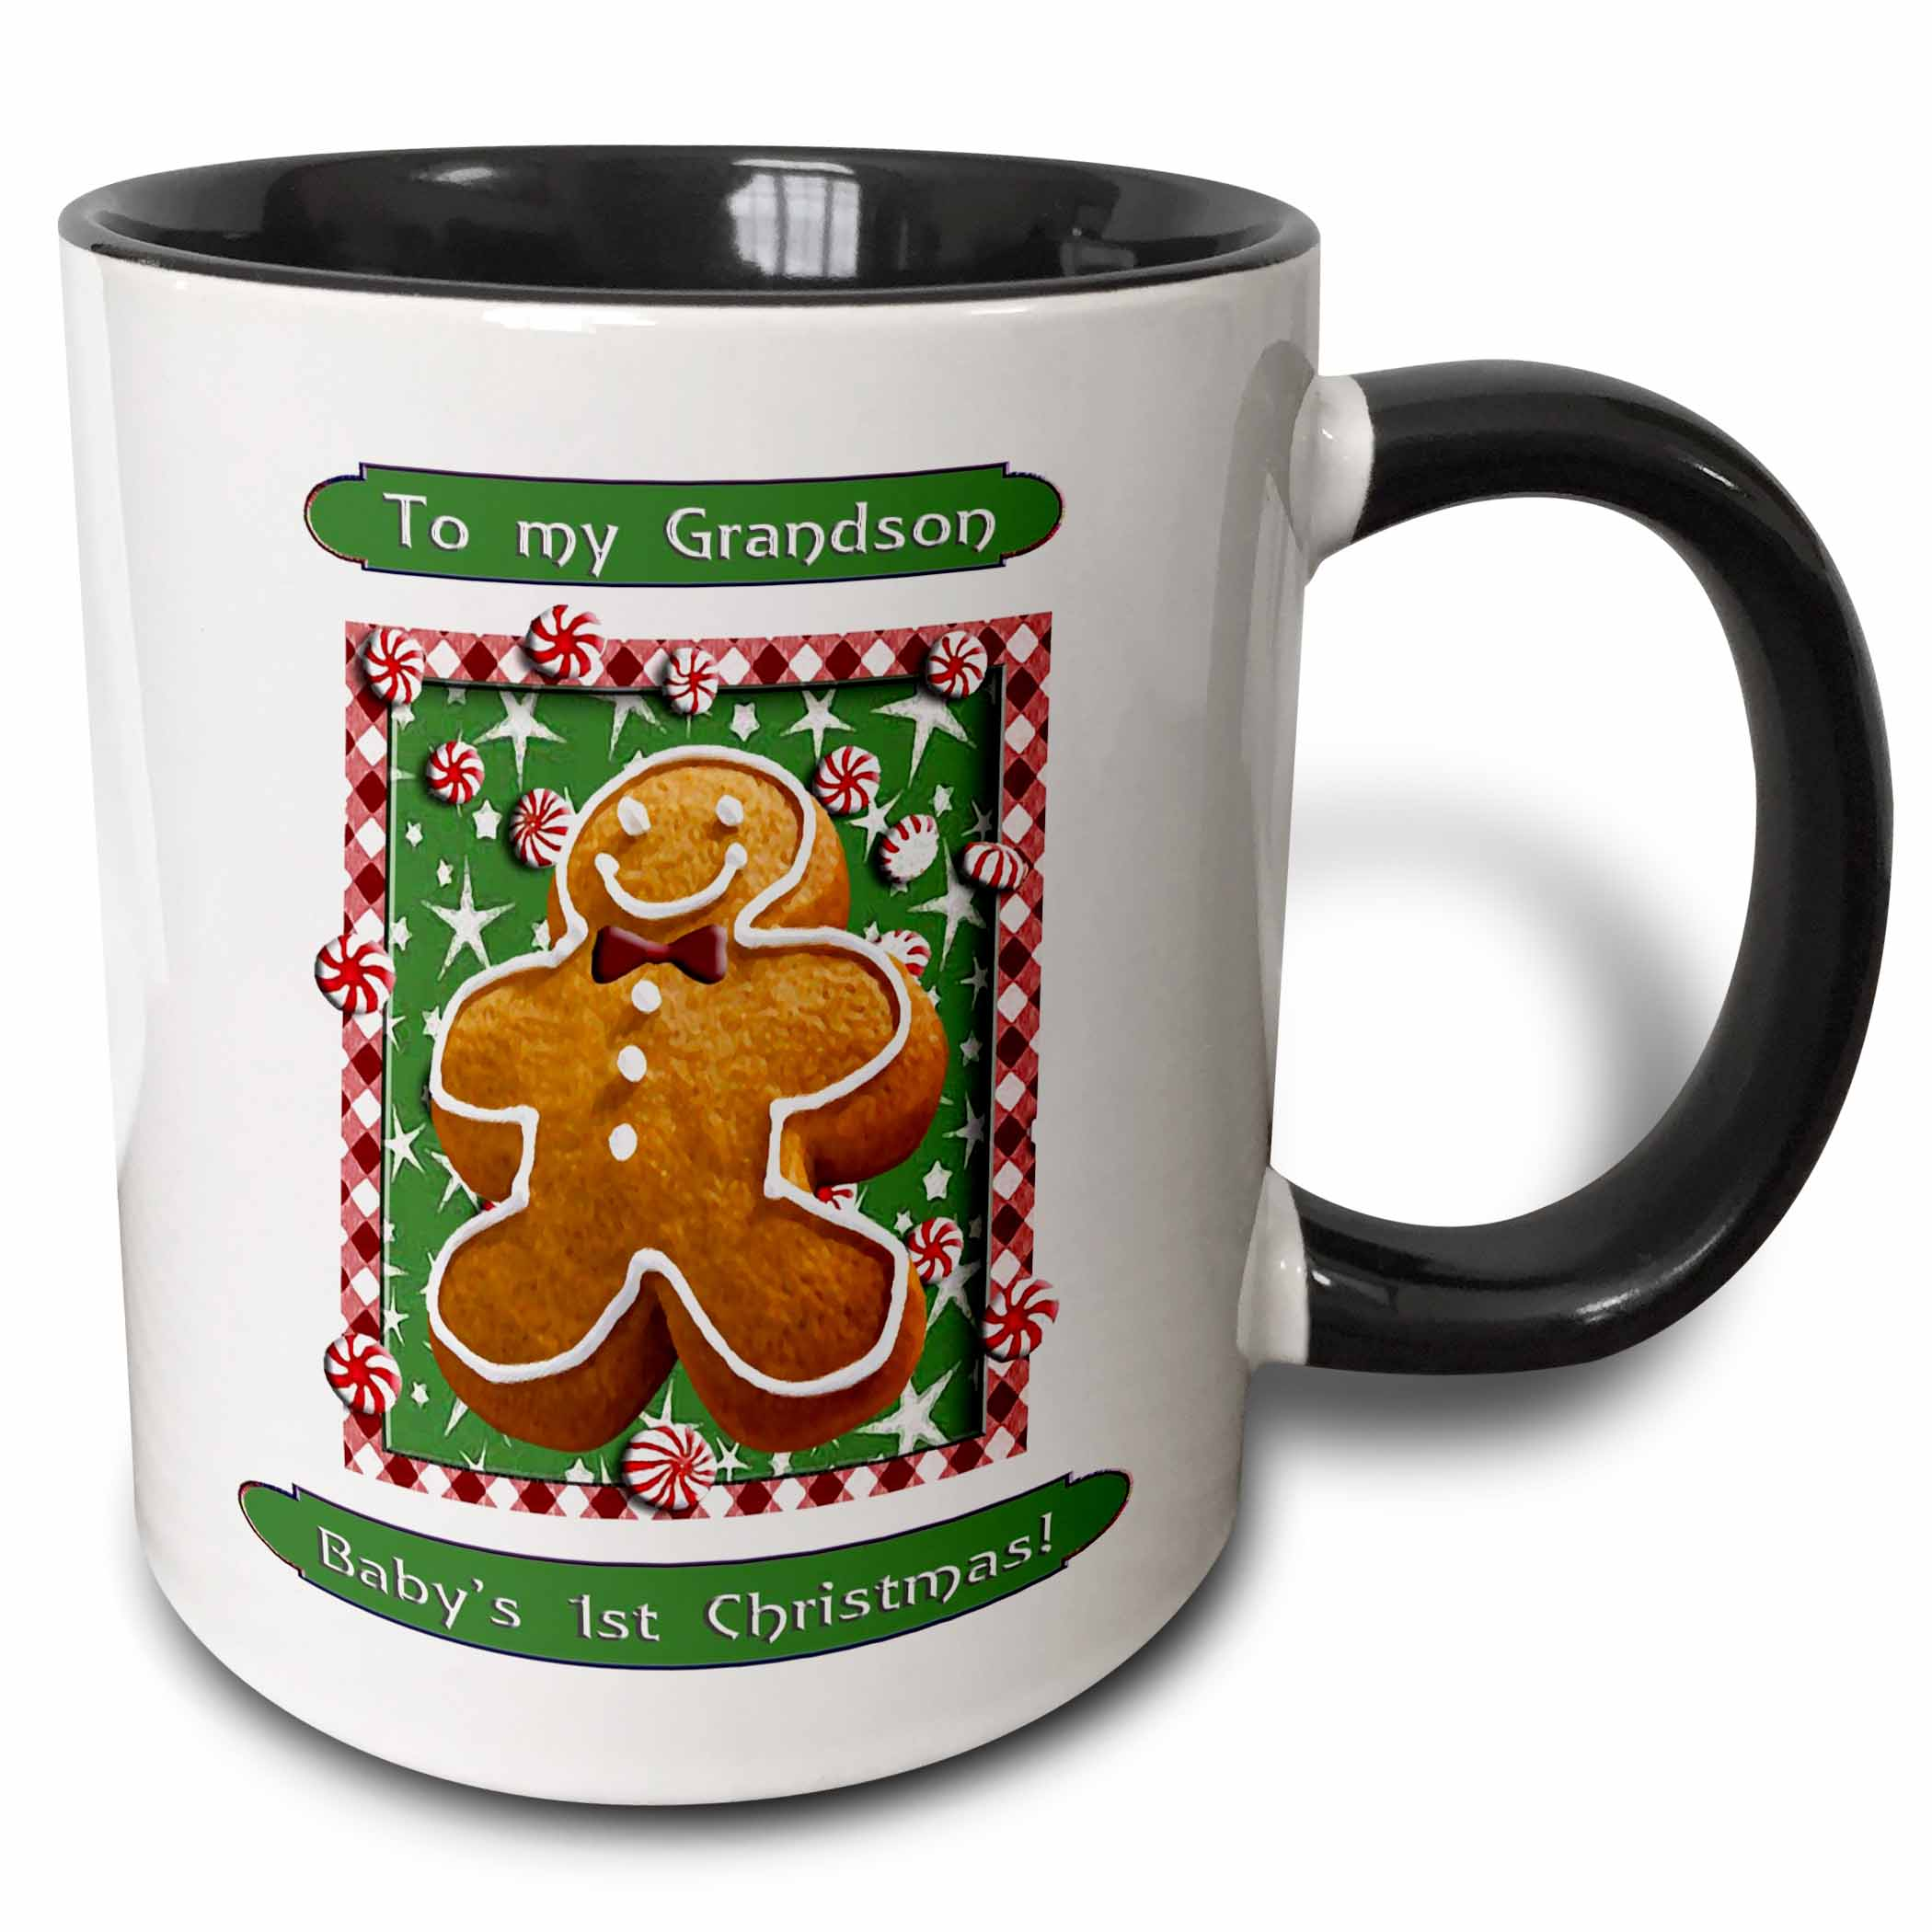 3dRose Gingerbread Boy, Babys First Christmas, Grandson - Two Tone Black Mug, 11-ounce